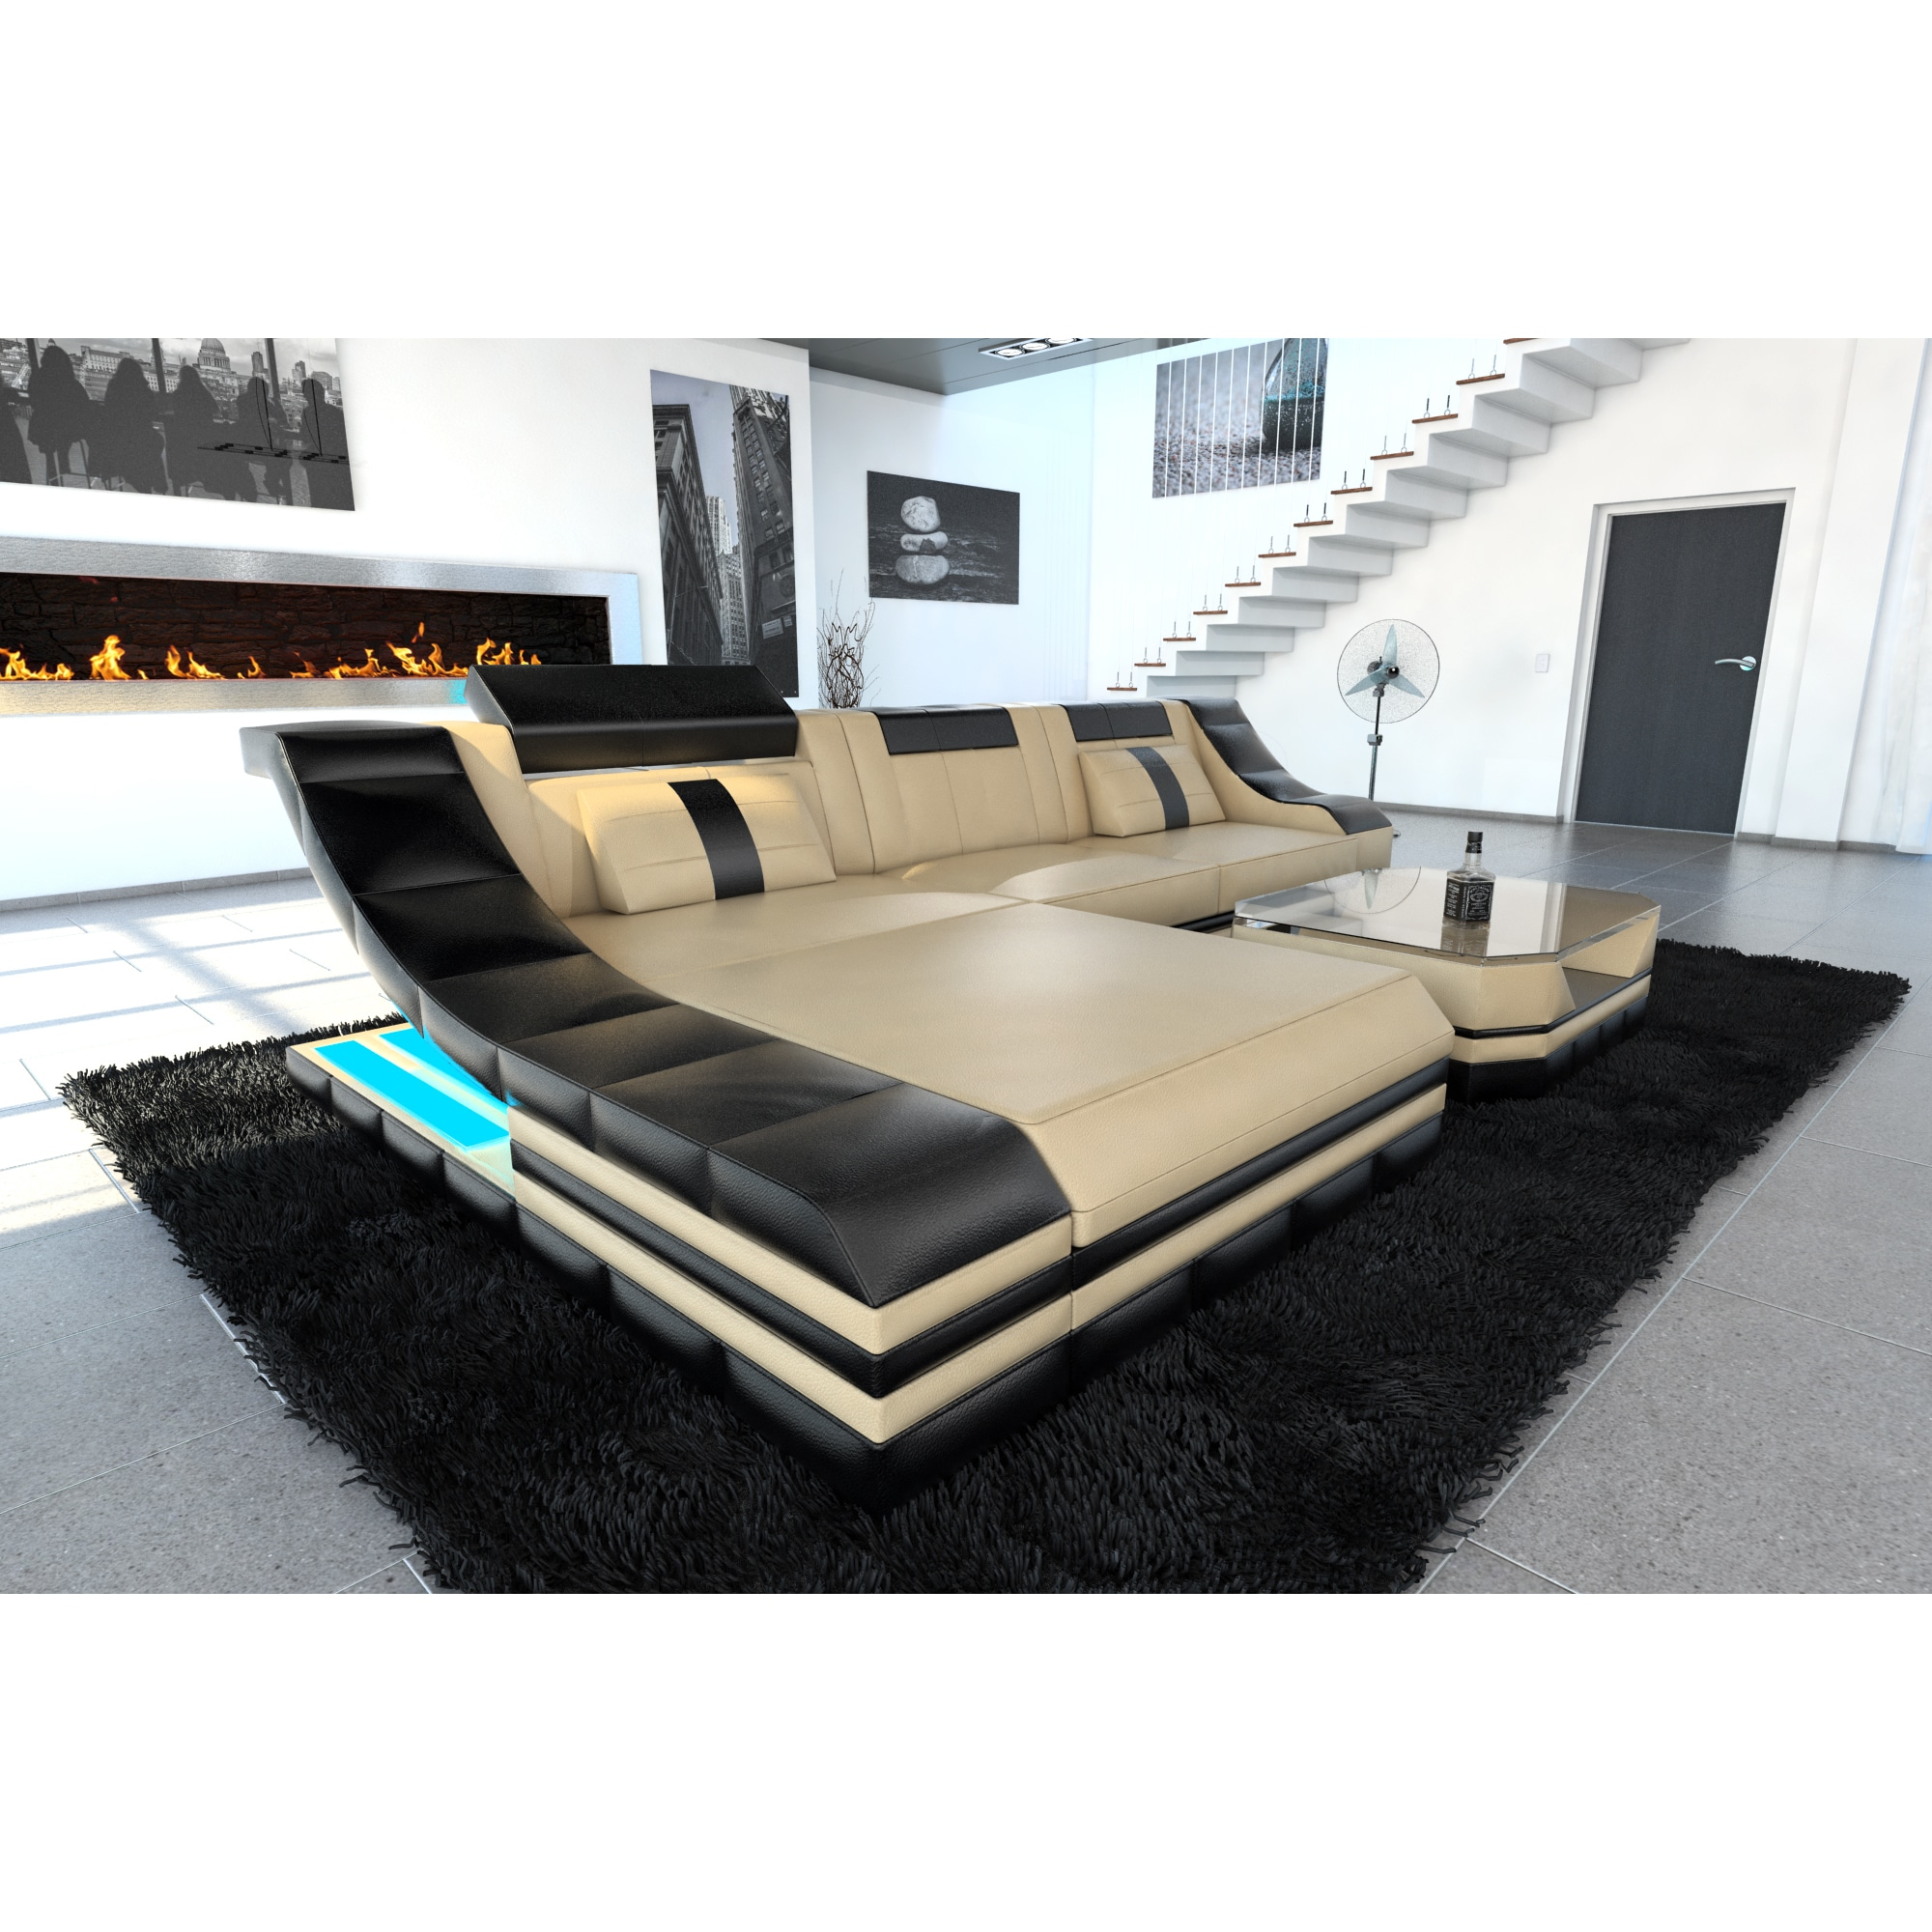 Xxl Sectional Sofa Jacksonville Led Lights U Shaped New York Led Lights Beige Leather L Shaped Sectional Sofa